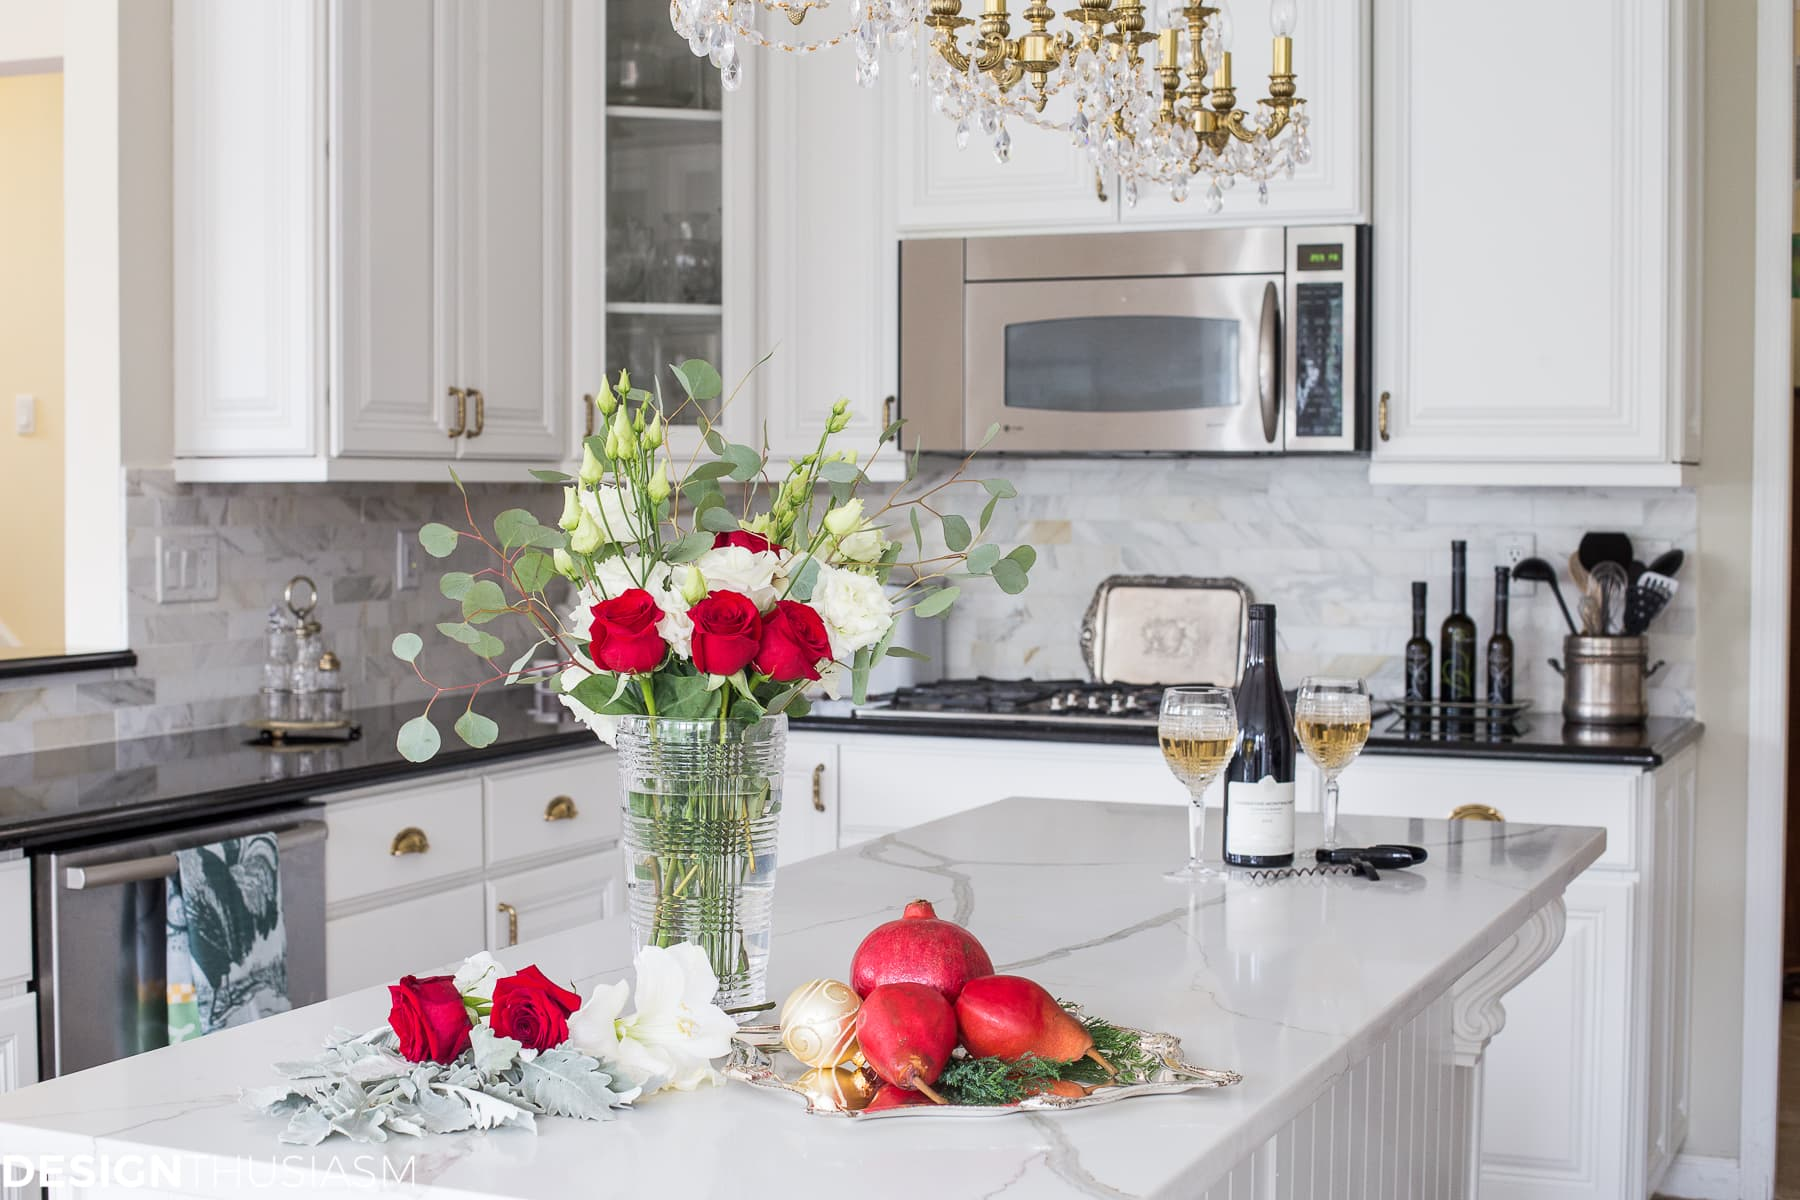 French Country Christmas kitchen decor - Traveller Location